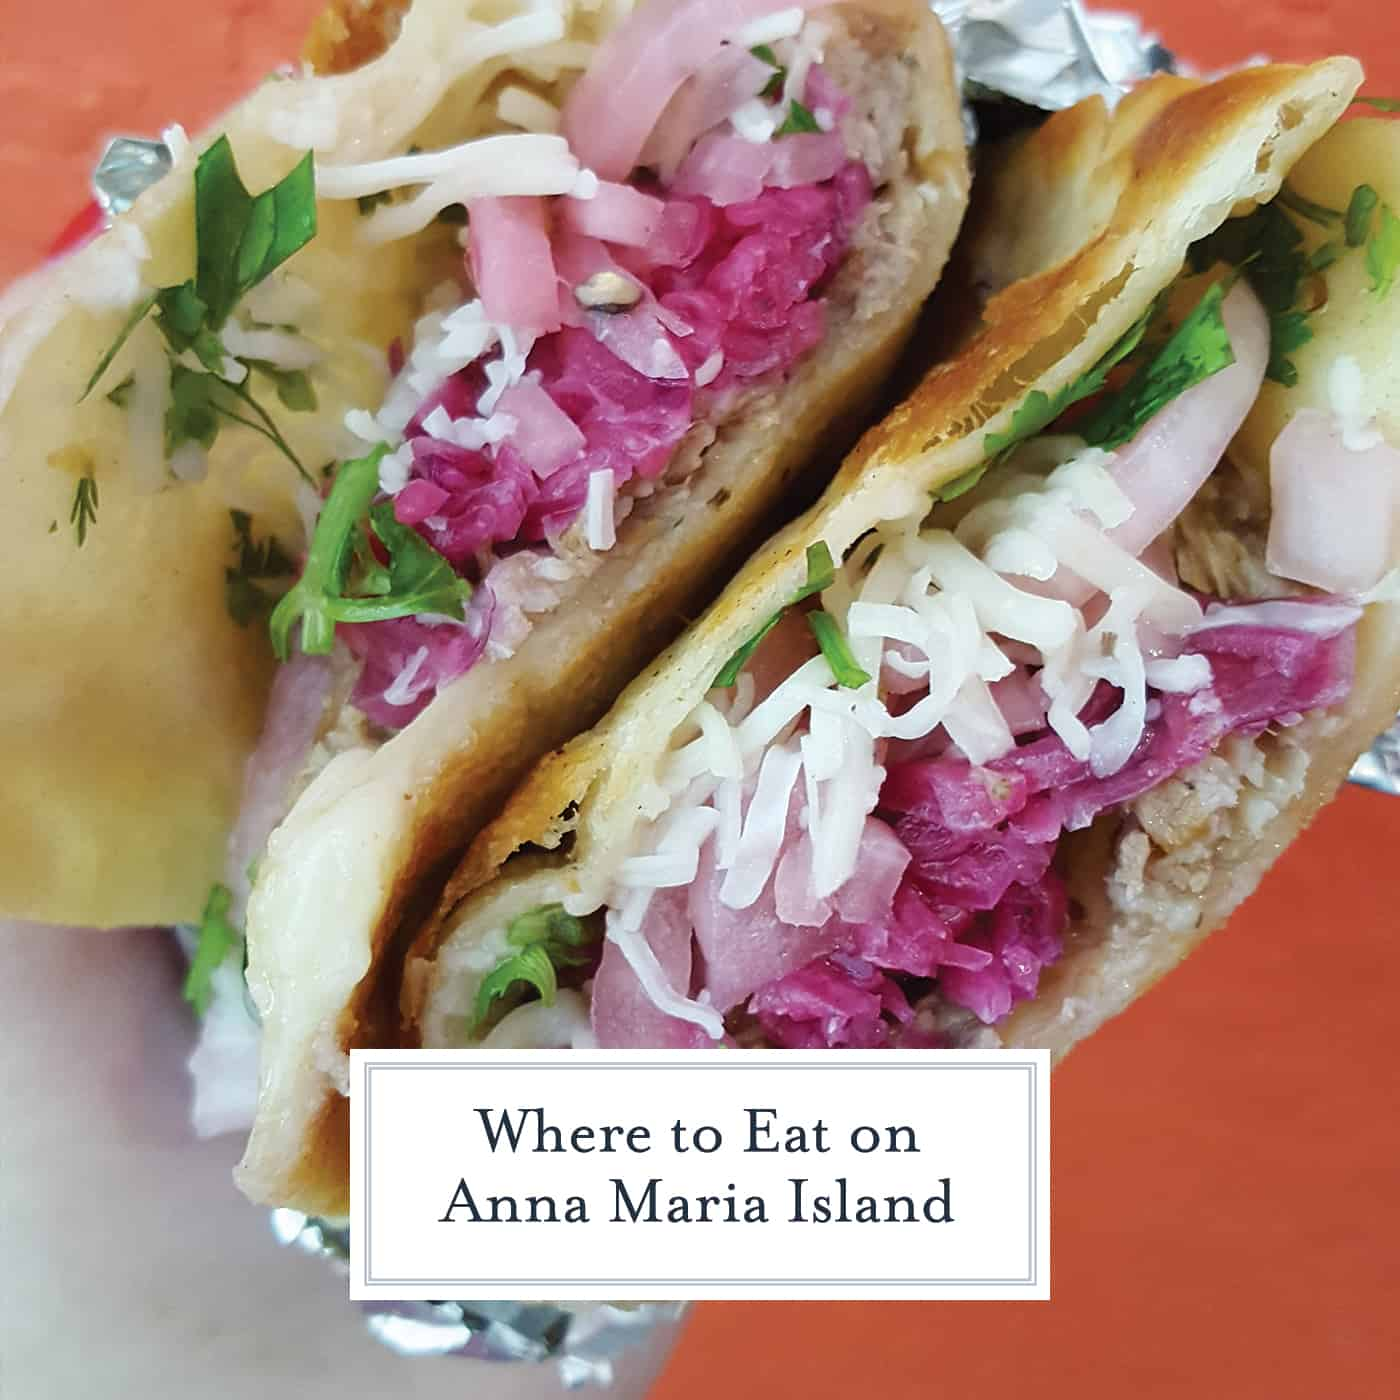 Where to Eat on Anna Maria Island: the best places to dine for seafood, tacos, Italian food, cupcakes, decadent desserts and a juicy steak. #annamariaisland #visitflorida www.savoryexperiments.com